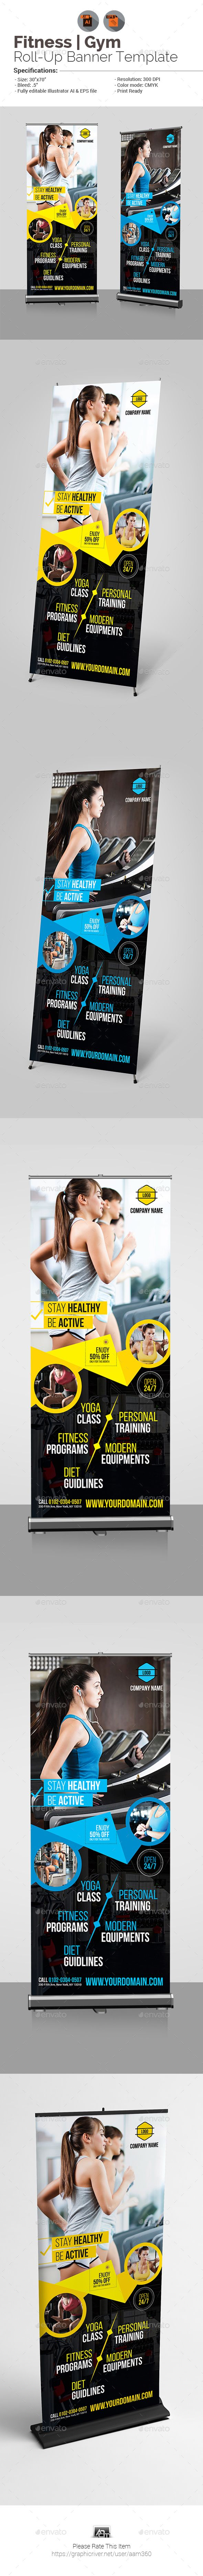 Fitness - Gym Roll-Up Banner - Signage Print Templates Download here: https://graphicriver.net/item/fitness-gym-rollup-banner/19970202?ref=classicdesignp